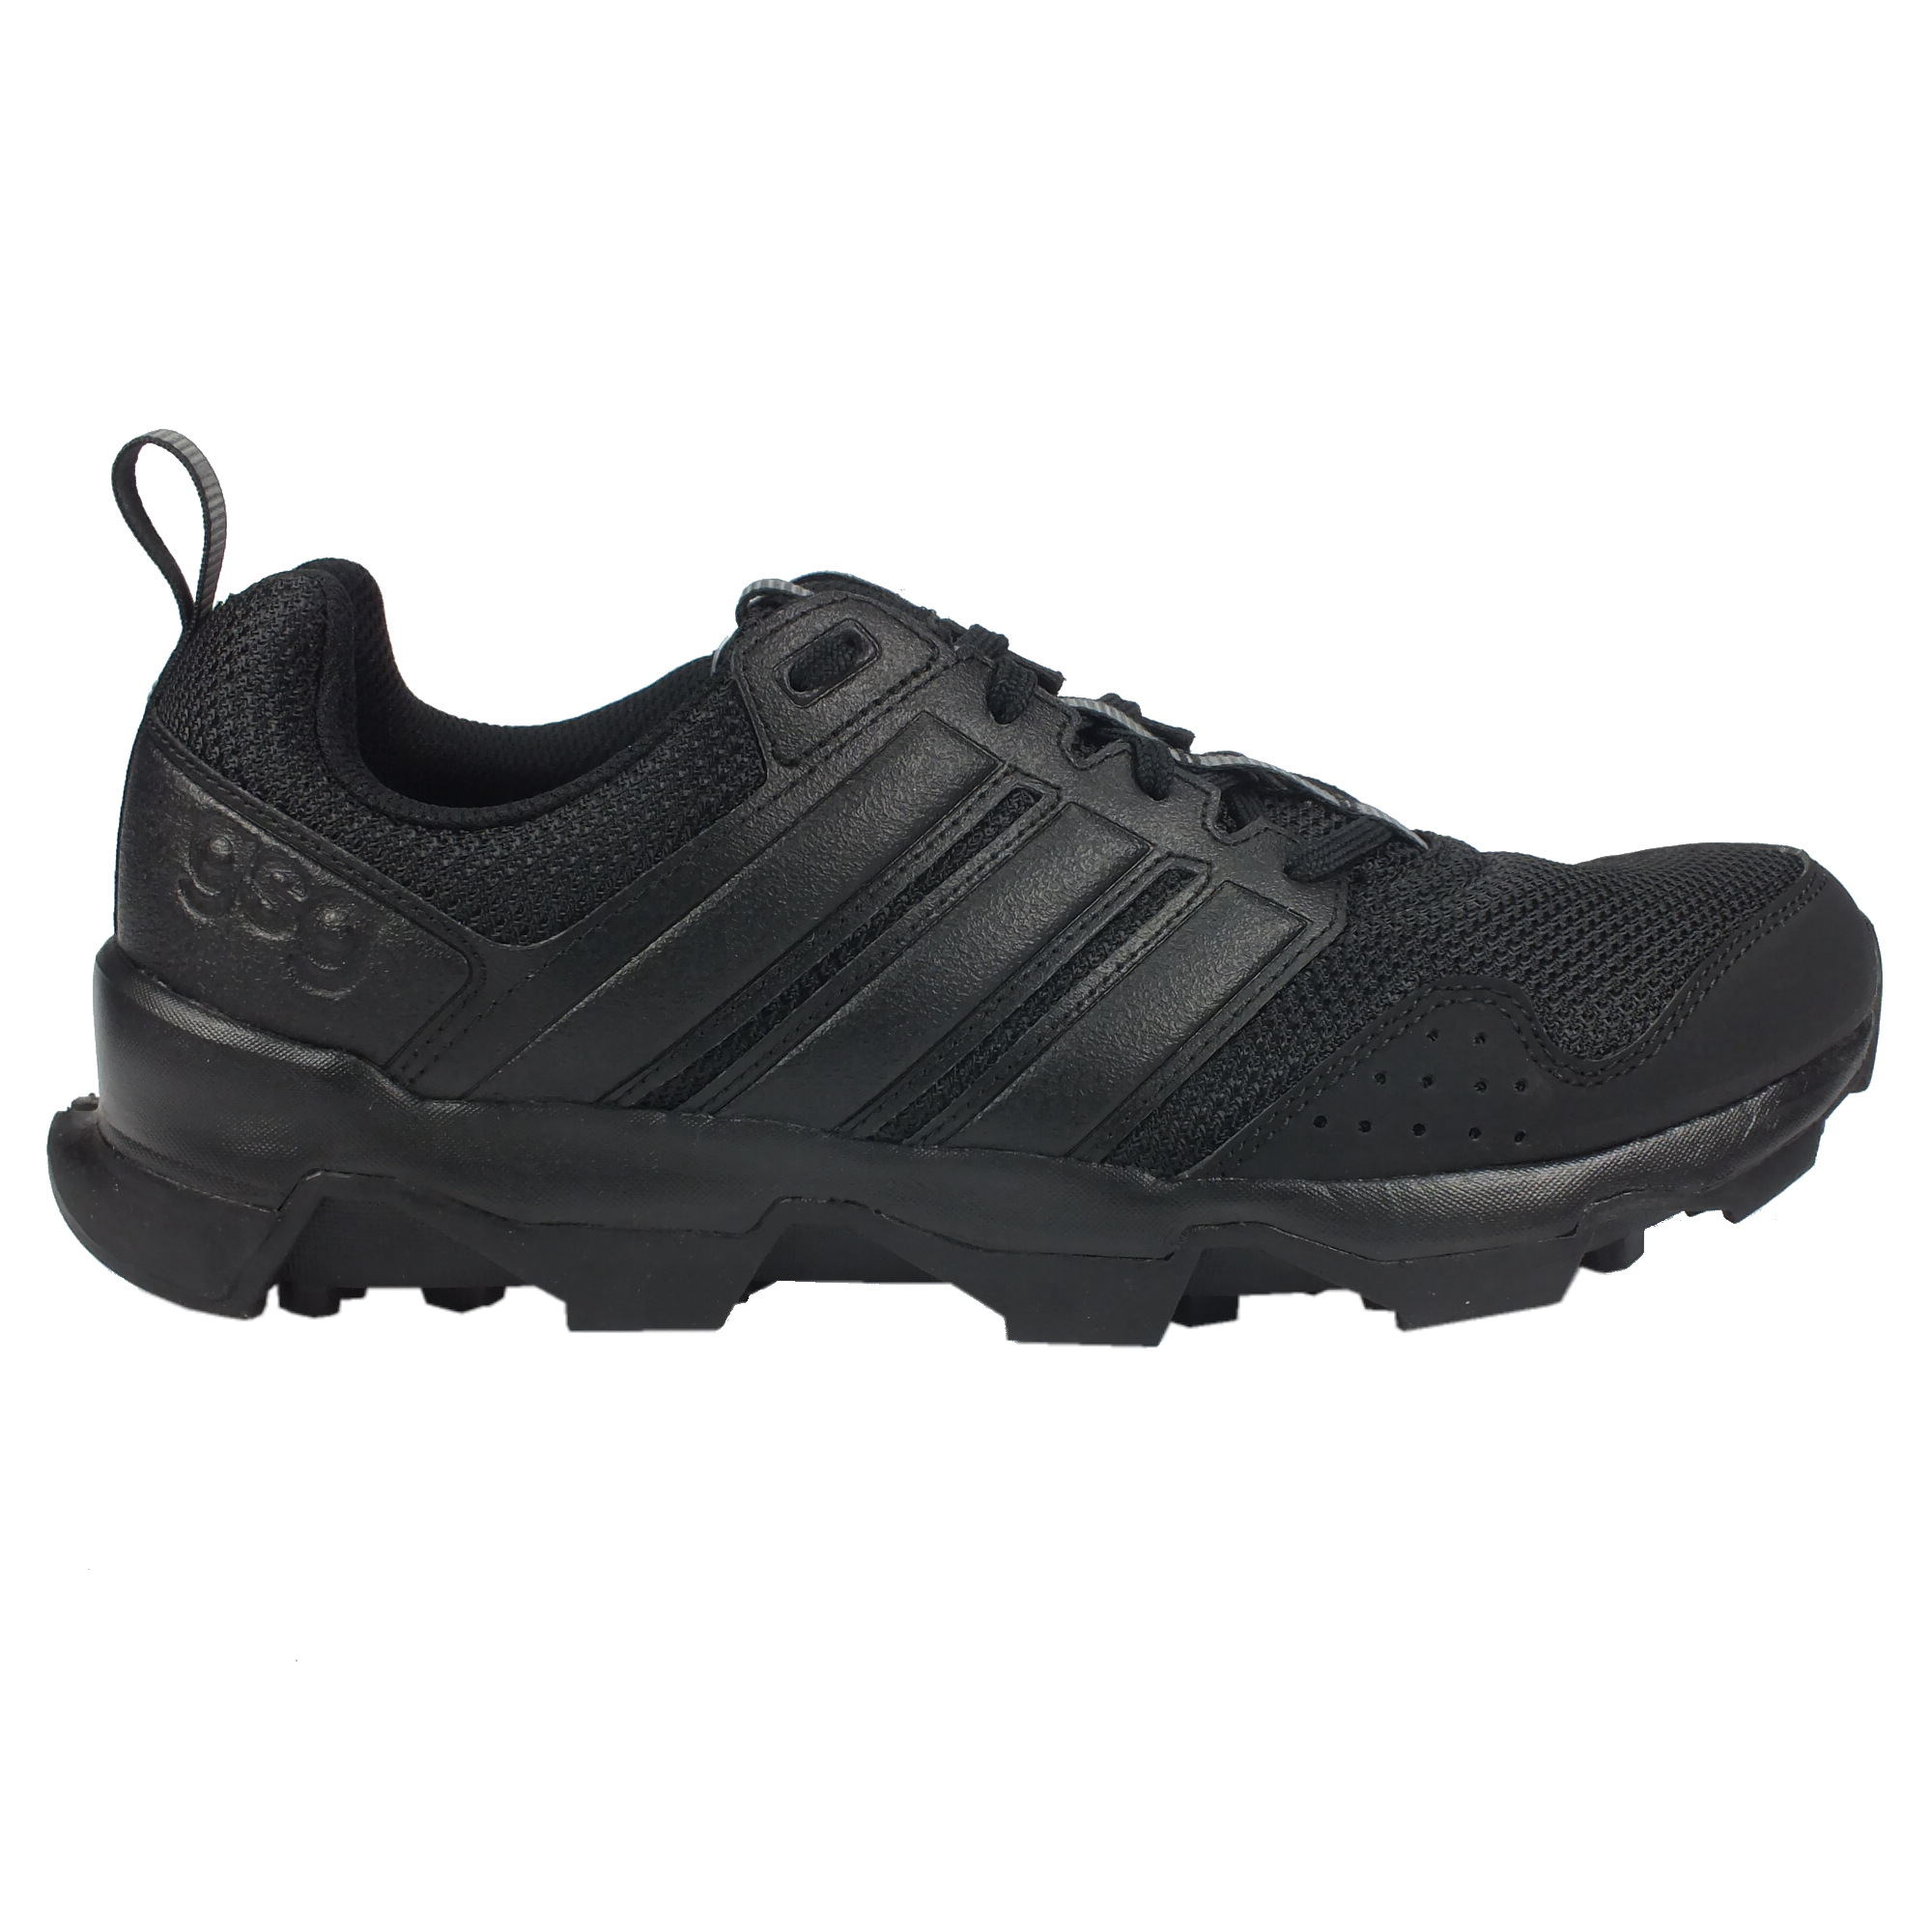 Adidas Gsg Trail Running Shoes